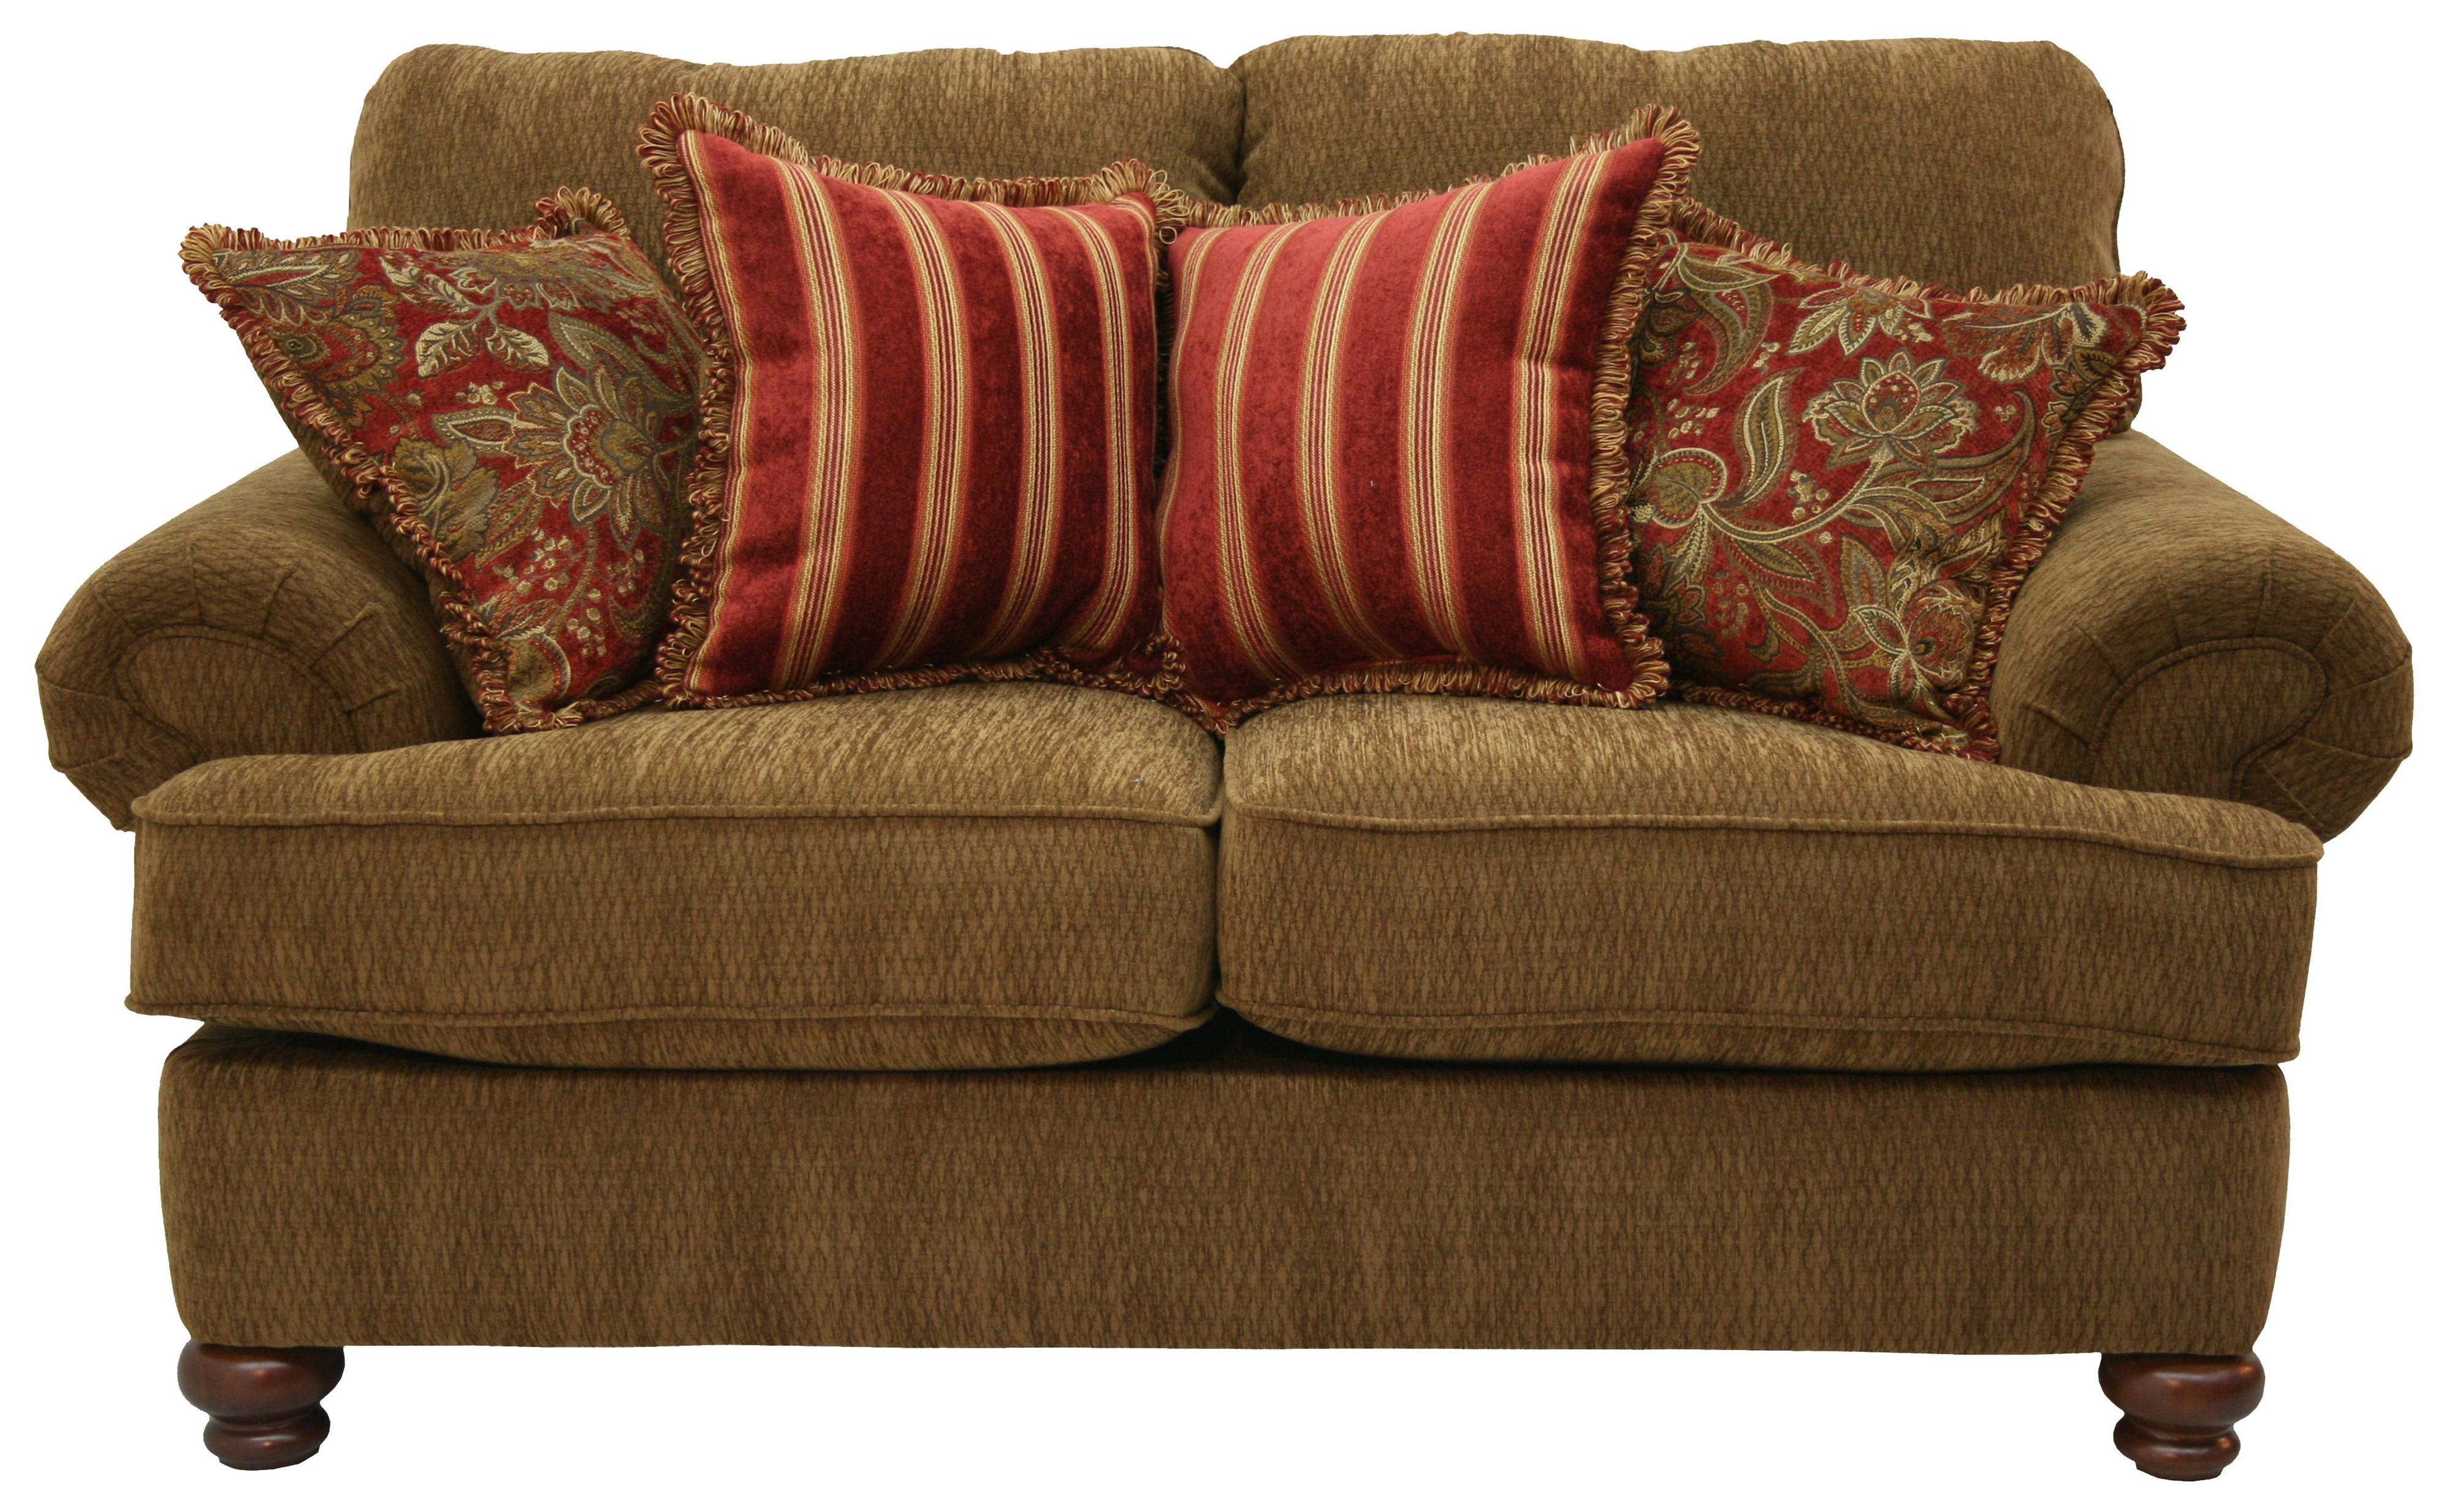 Jackson Furniture Belmont Loveseat - Item Number: 4347-02